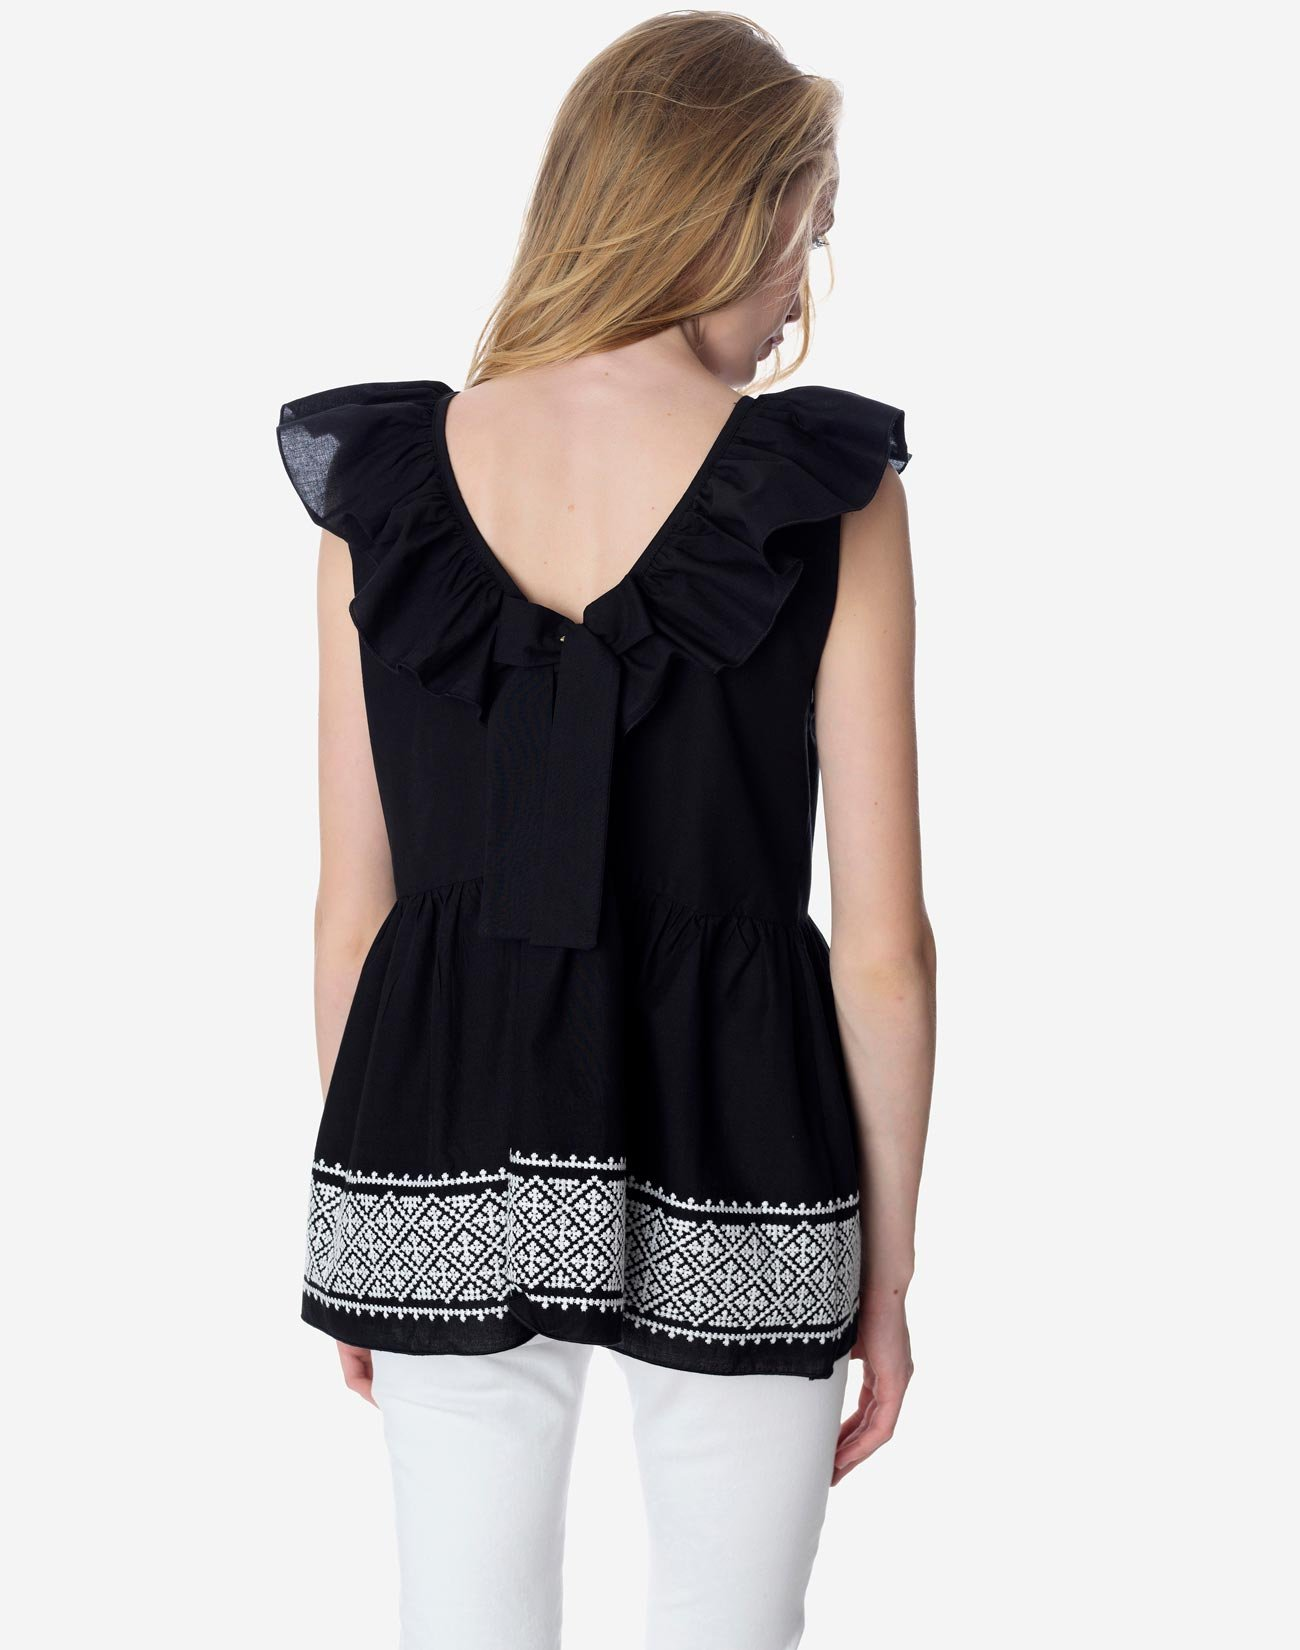 Ruffled top with embroidery